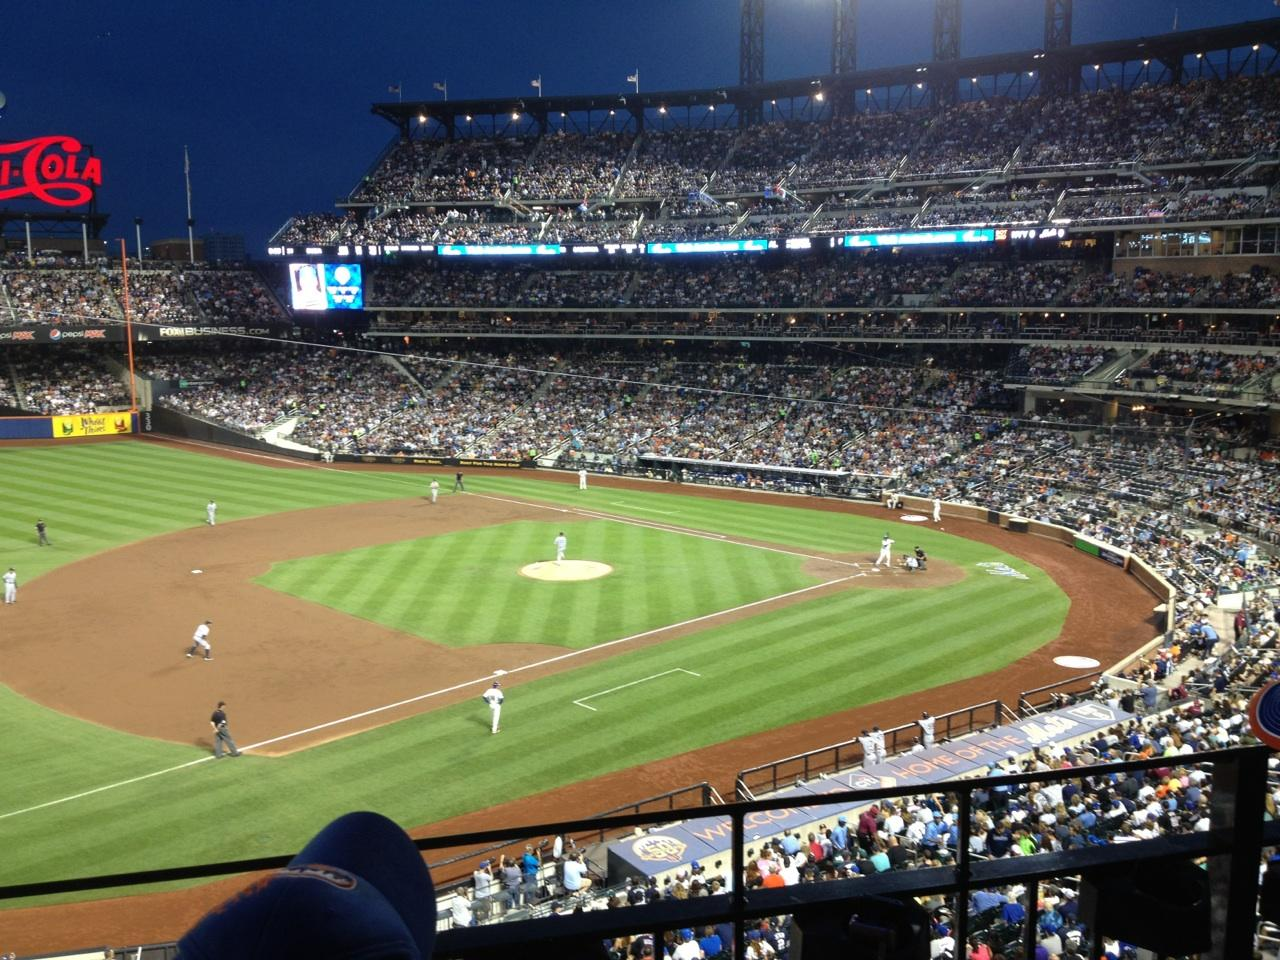 Citi Field section 329 row 2 seat 12 - New York Mets vs ...